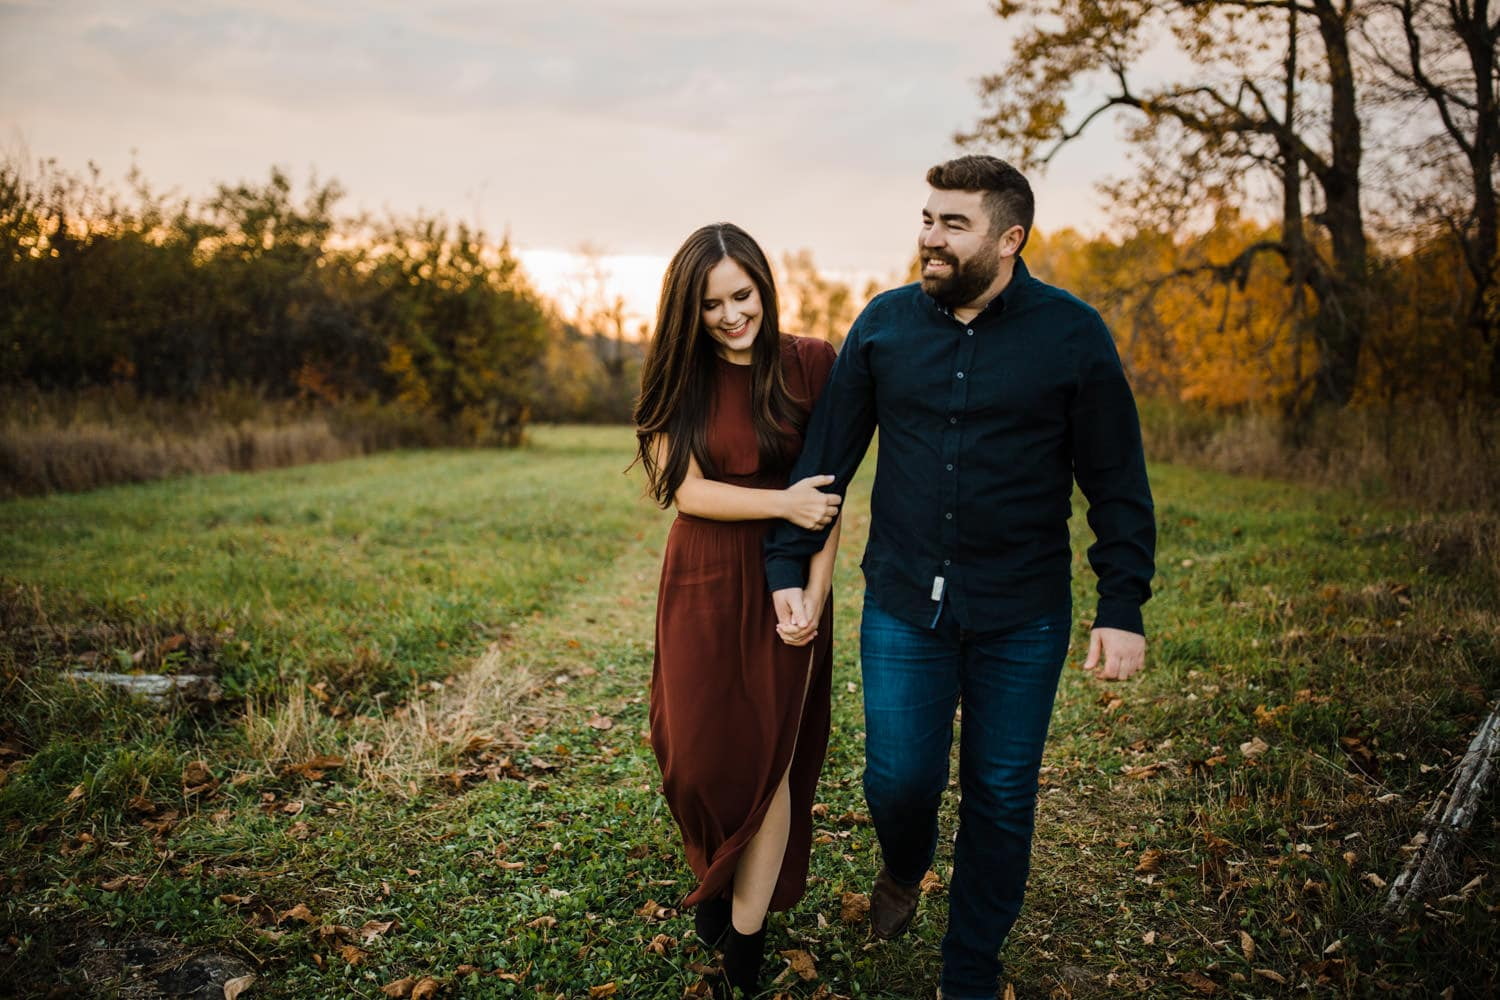 couple walk hand in hand together outside